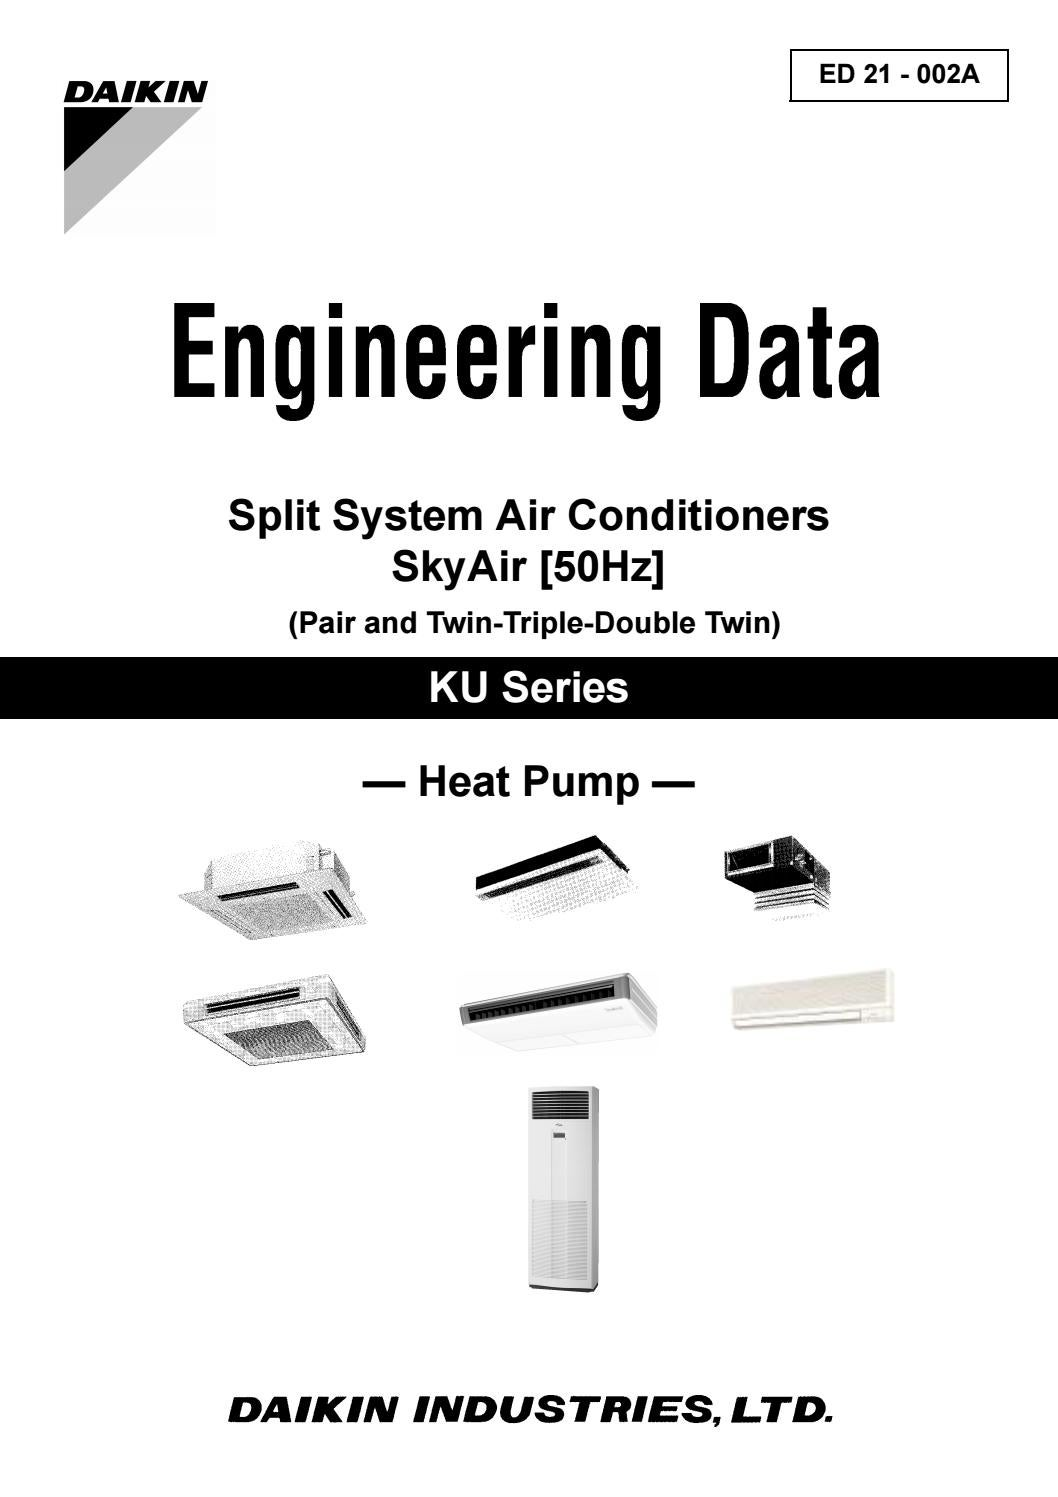 Daikin Engineering Data Split Skyair Ku Fhyc Kvefhy Bve By Inverter Air Conditioner Wiring Diagram Education Vietmastec Issuu